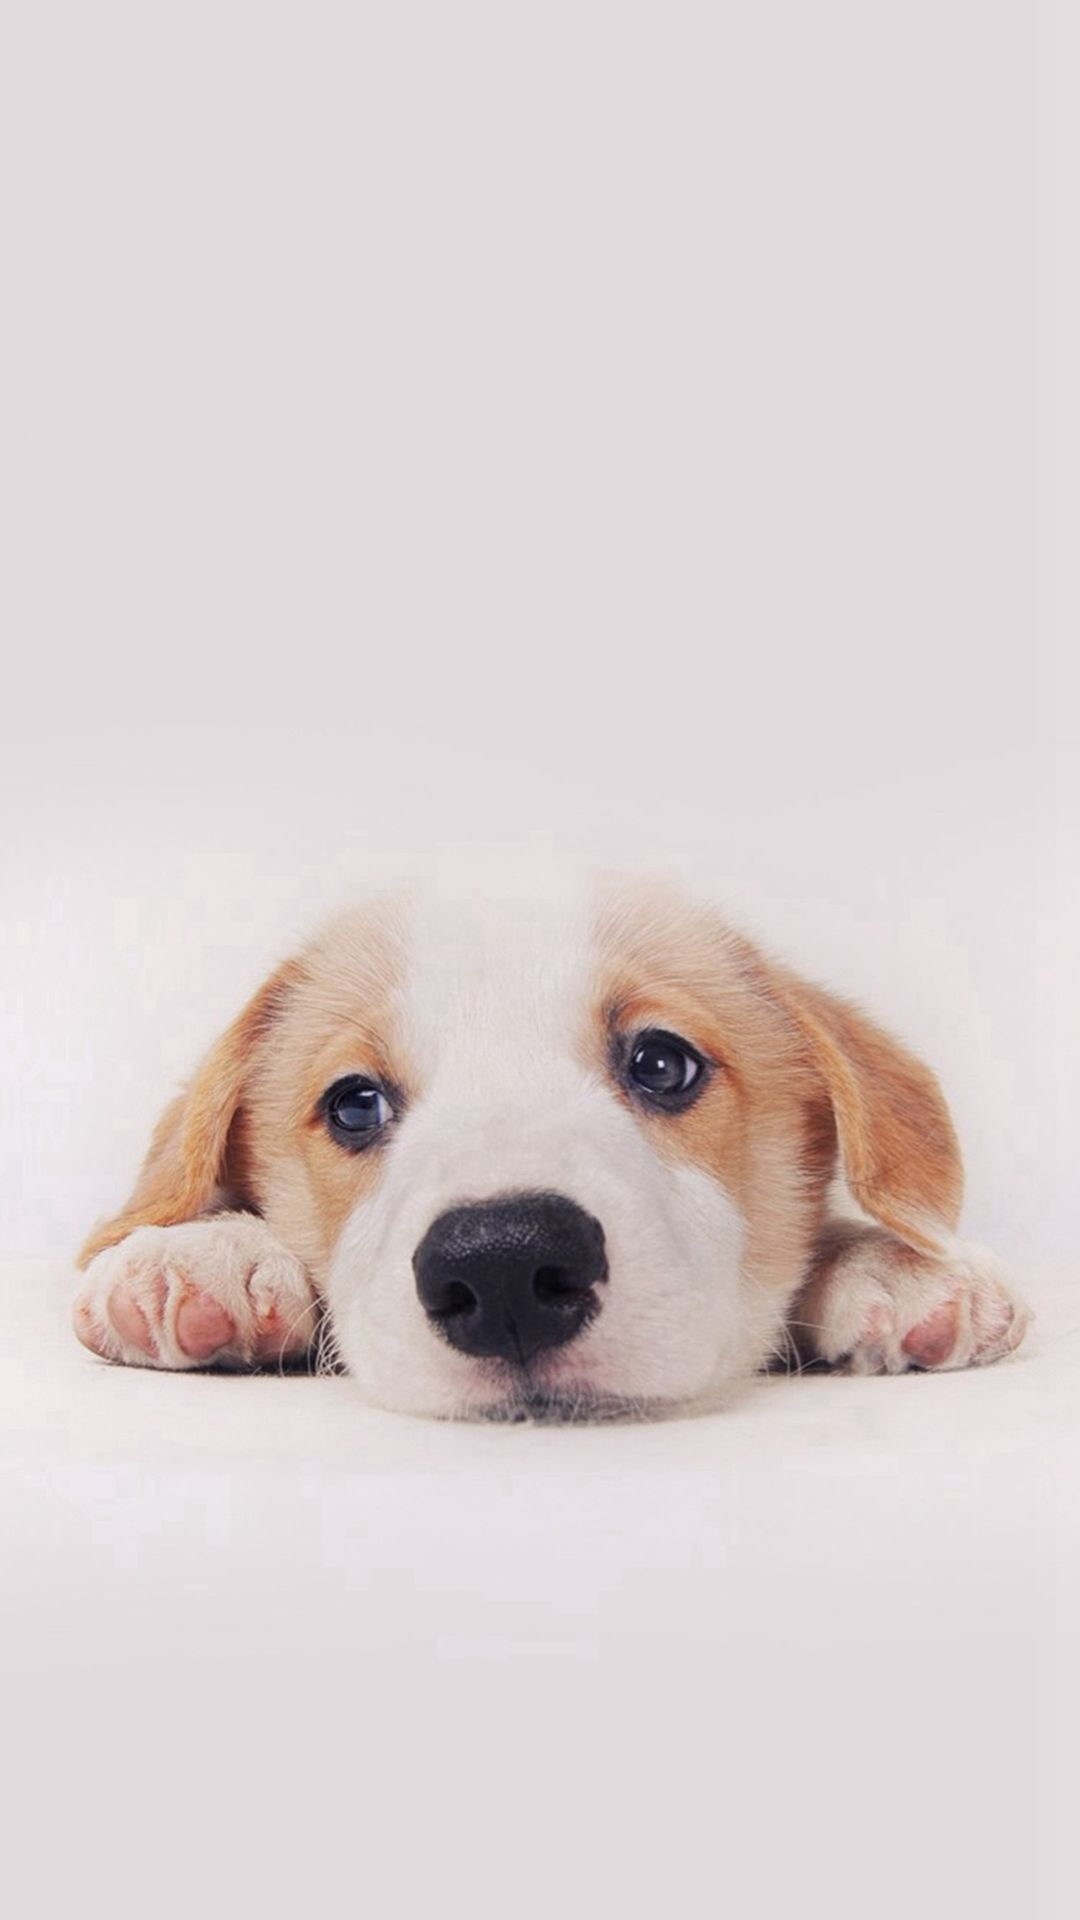 Cute Puppy Dog Pet IPhone 6 Plus Wallpaper